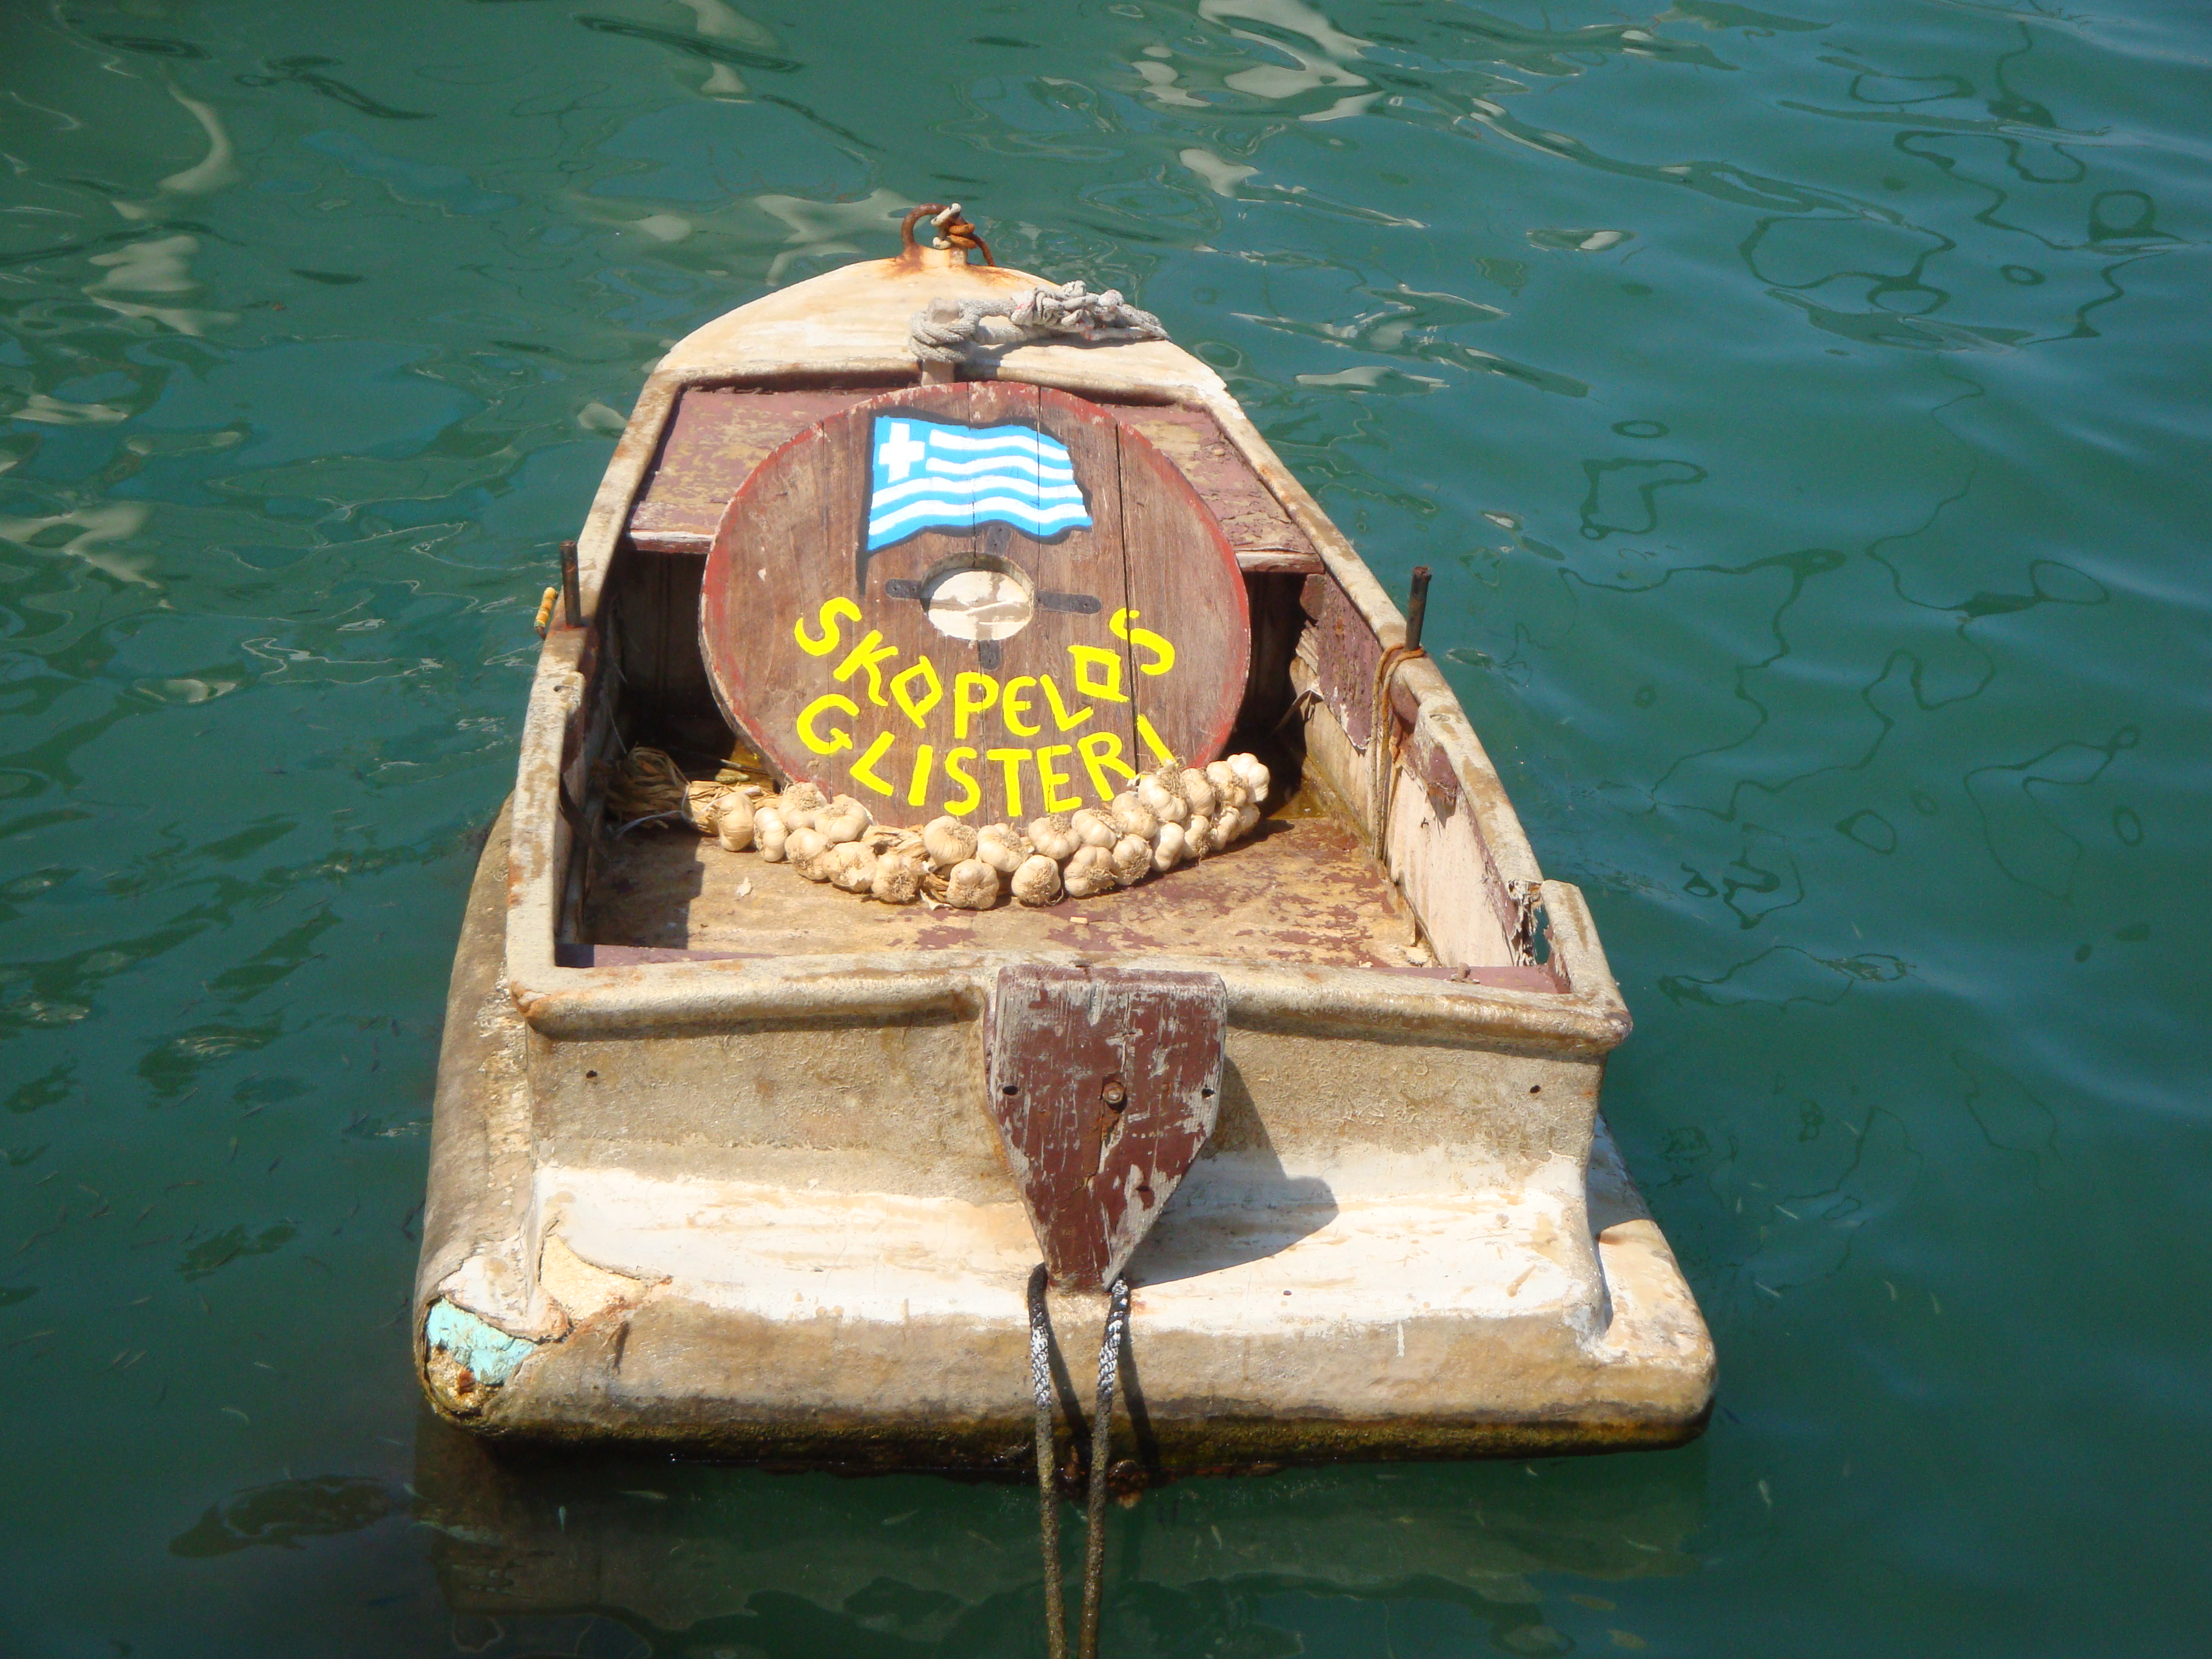 The old-fashioned boat to Glysteri beach (Γλυστέρι)